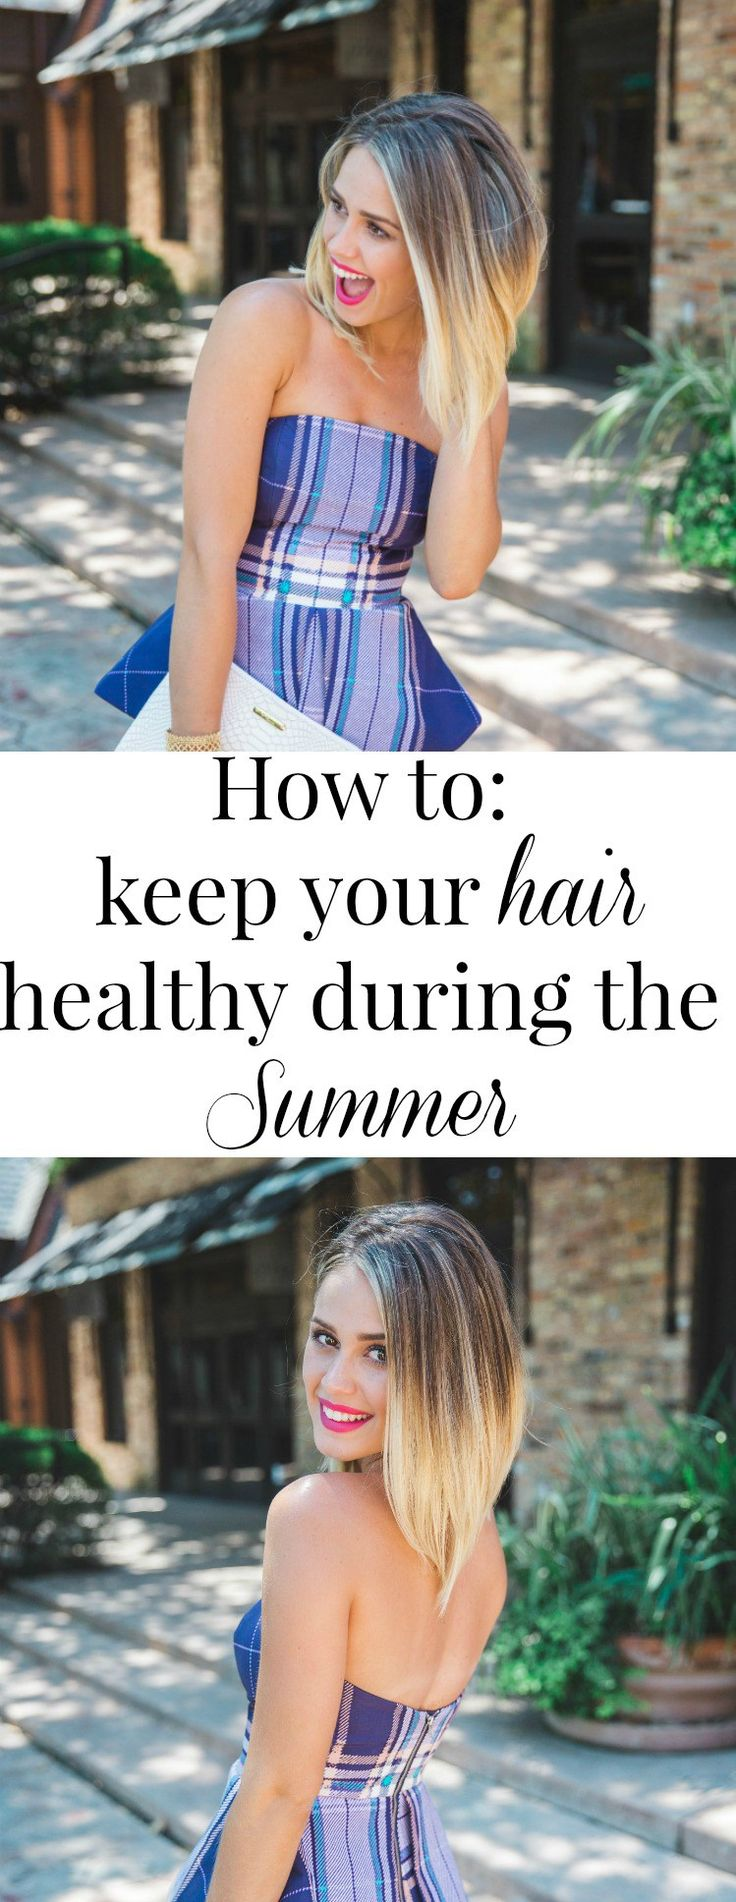 How to keep your hair healthy during the summer | Healthy Hair | How to keep your hair healthy